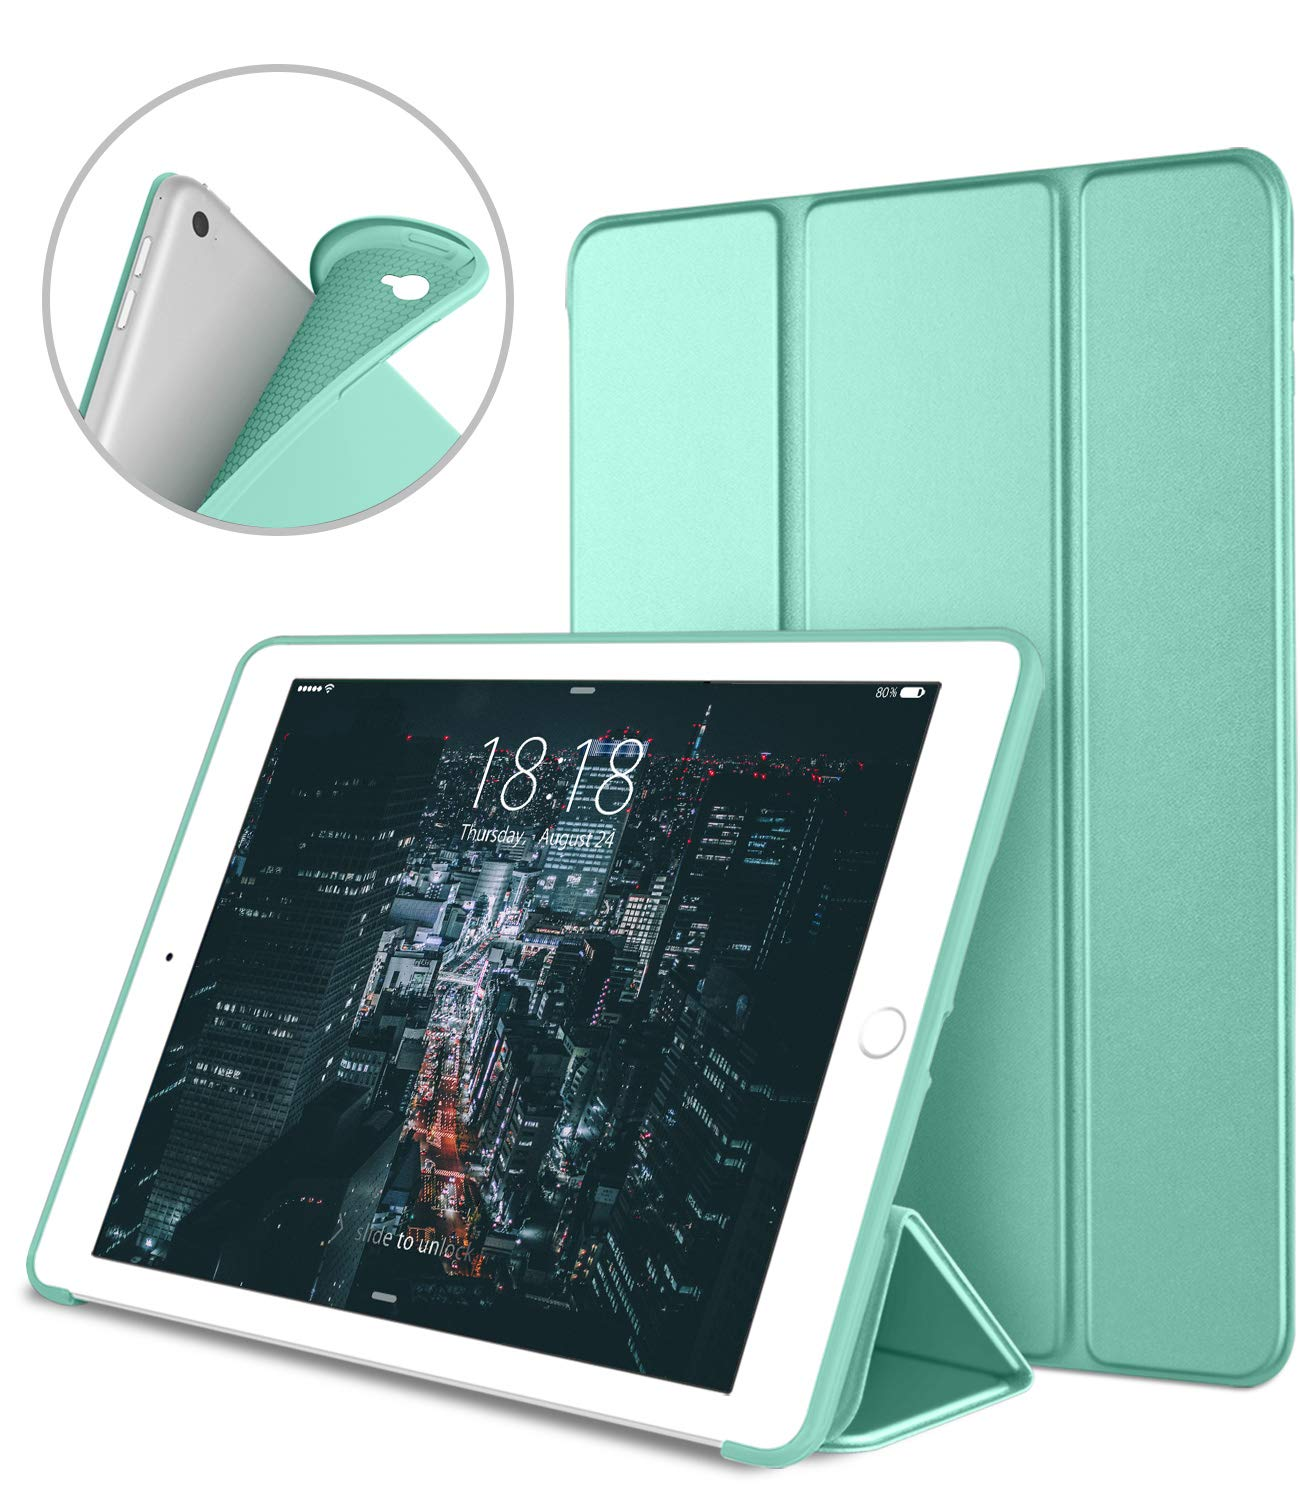 DTTO iPad Air 2 Case (2014 Released), Ultra Slim Lightweight Smart Case Trifold Stand with Flexible Soft TPU Back Cover for Apple iPad Air 2 (Model A1566/A1567), Mint Green